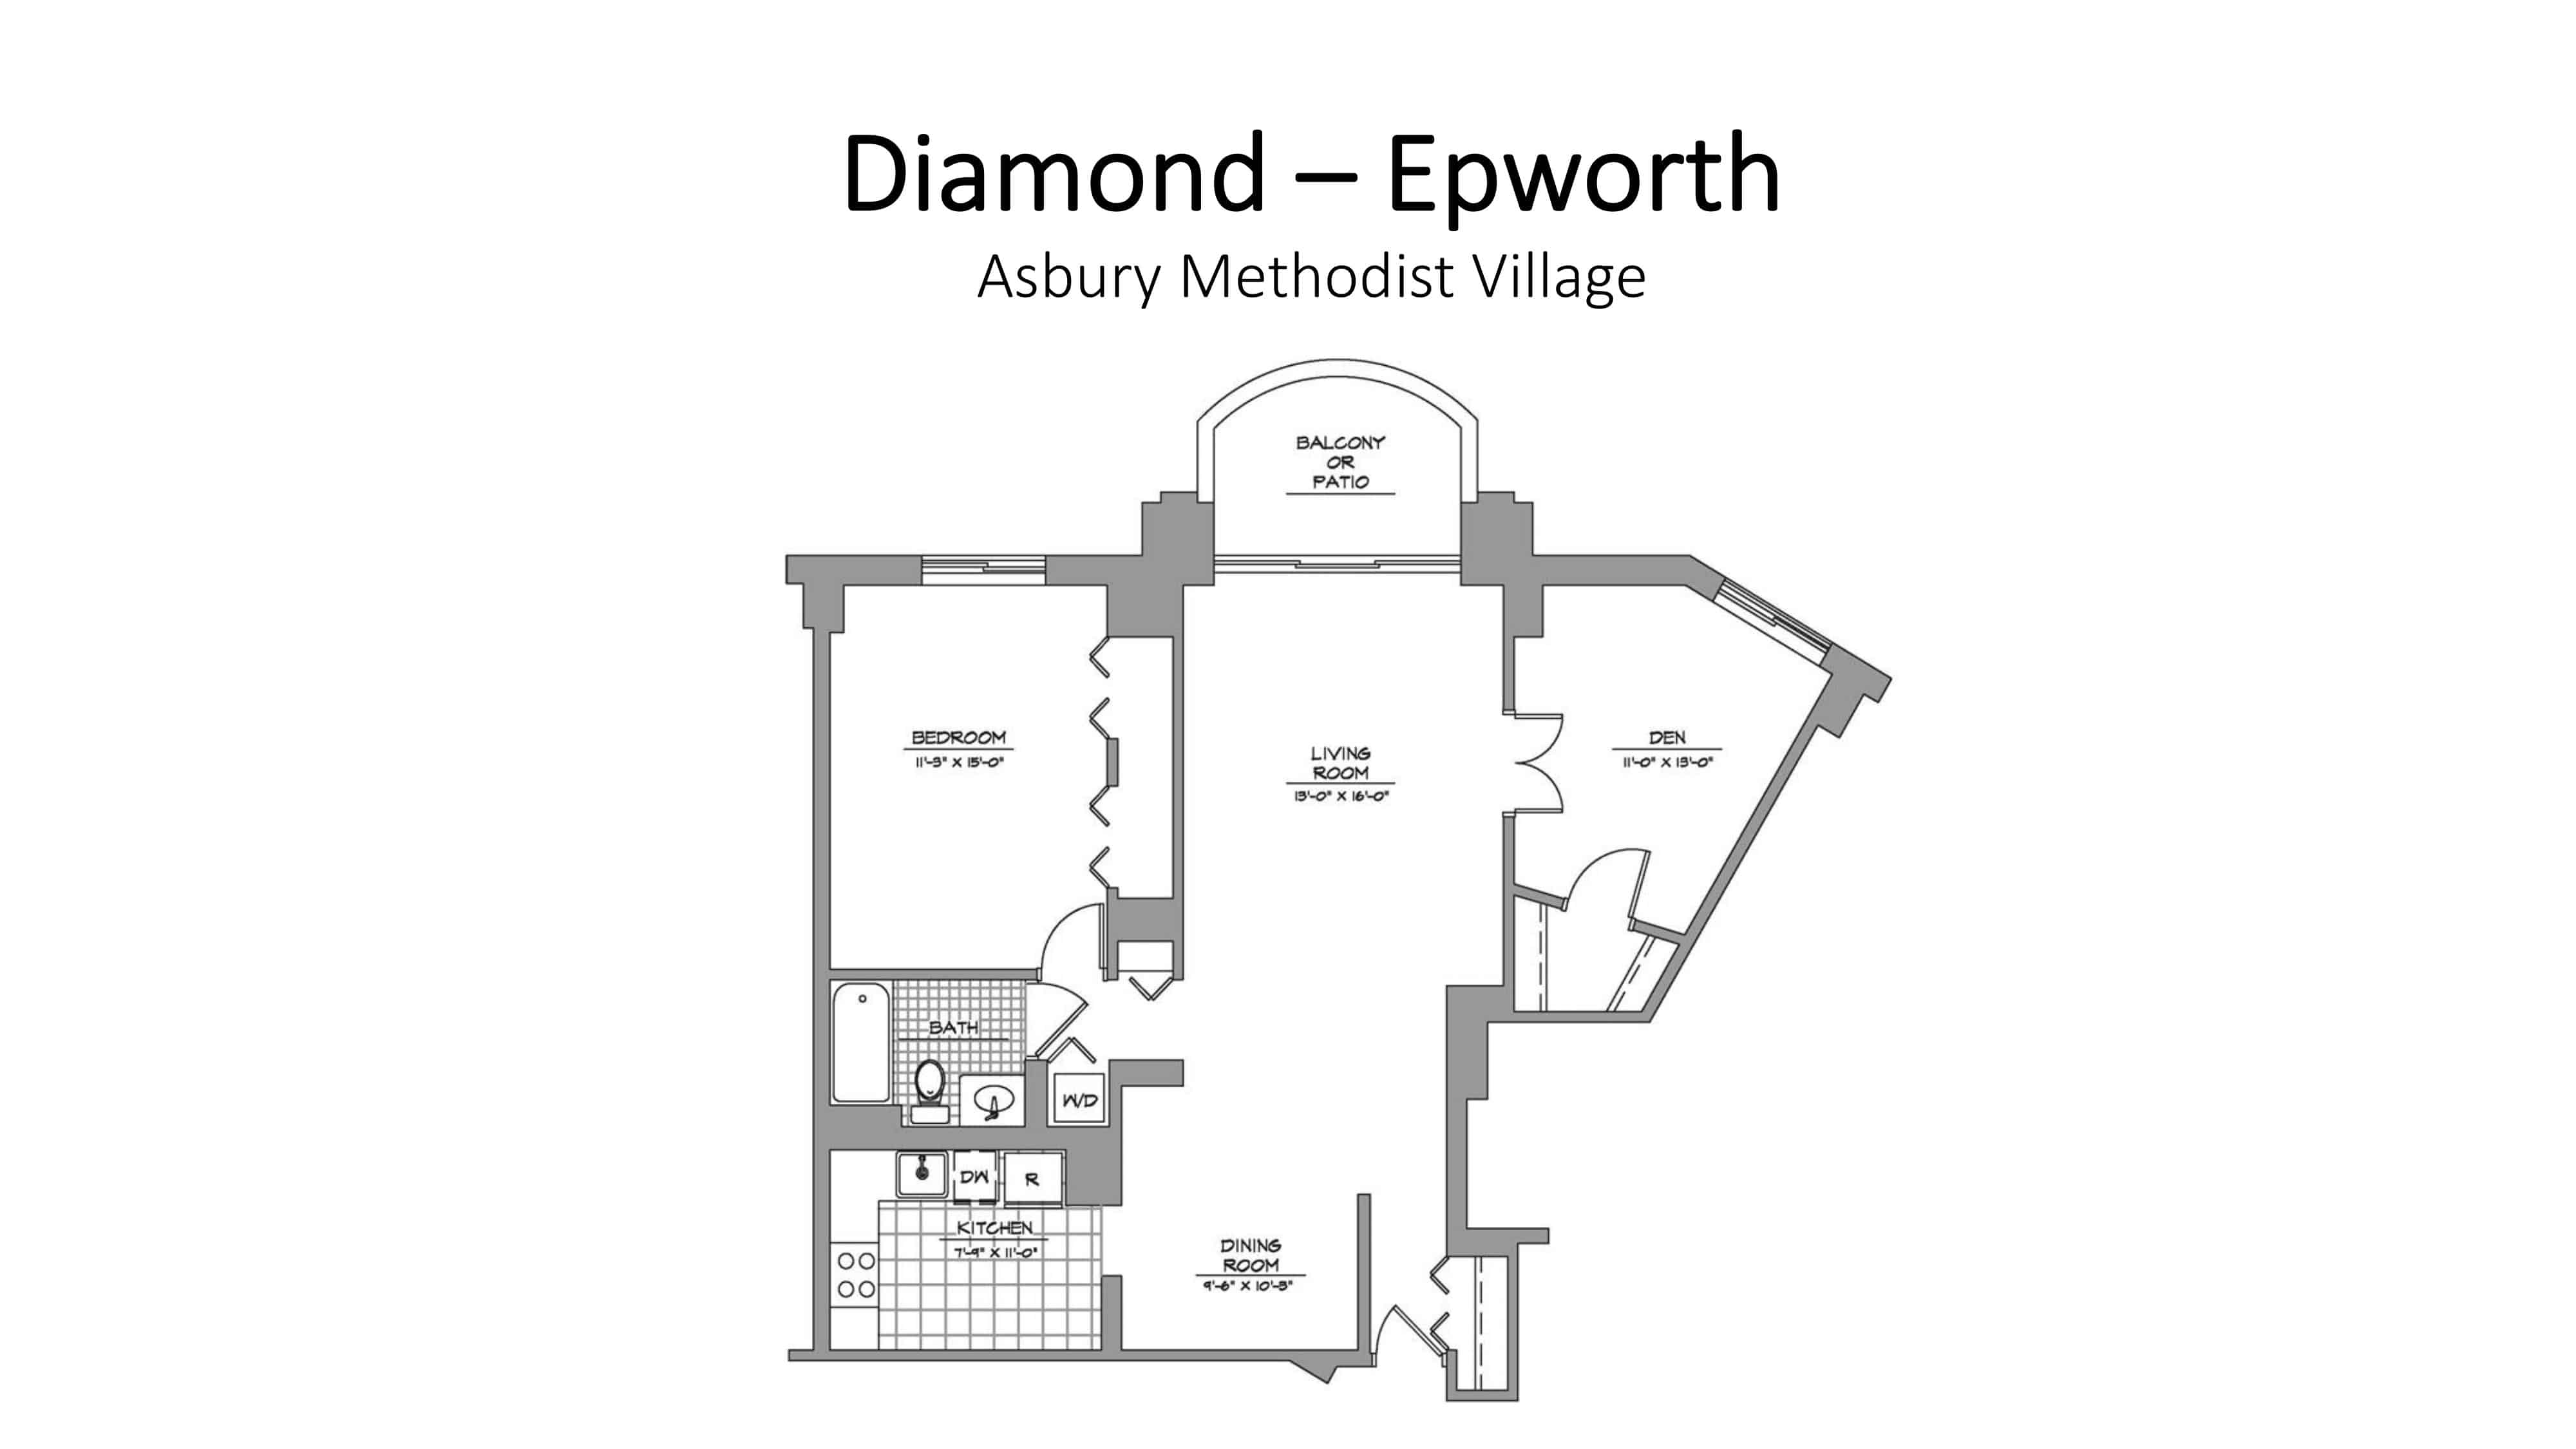 Asbury Methodist Village Diamond - Epworth